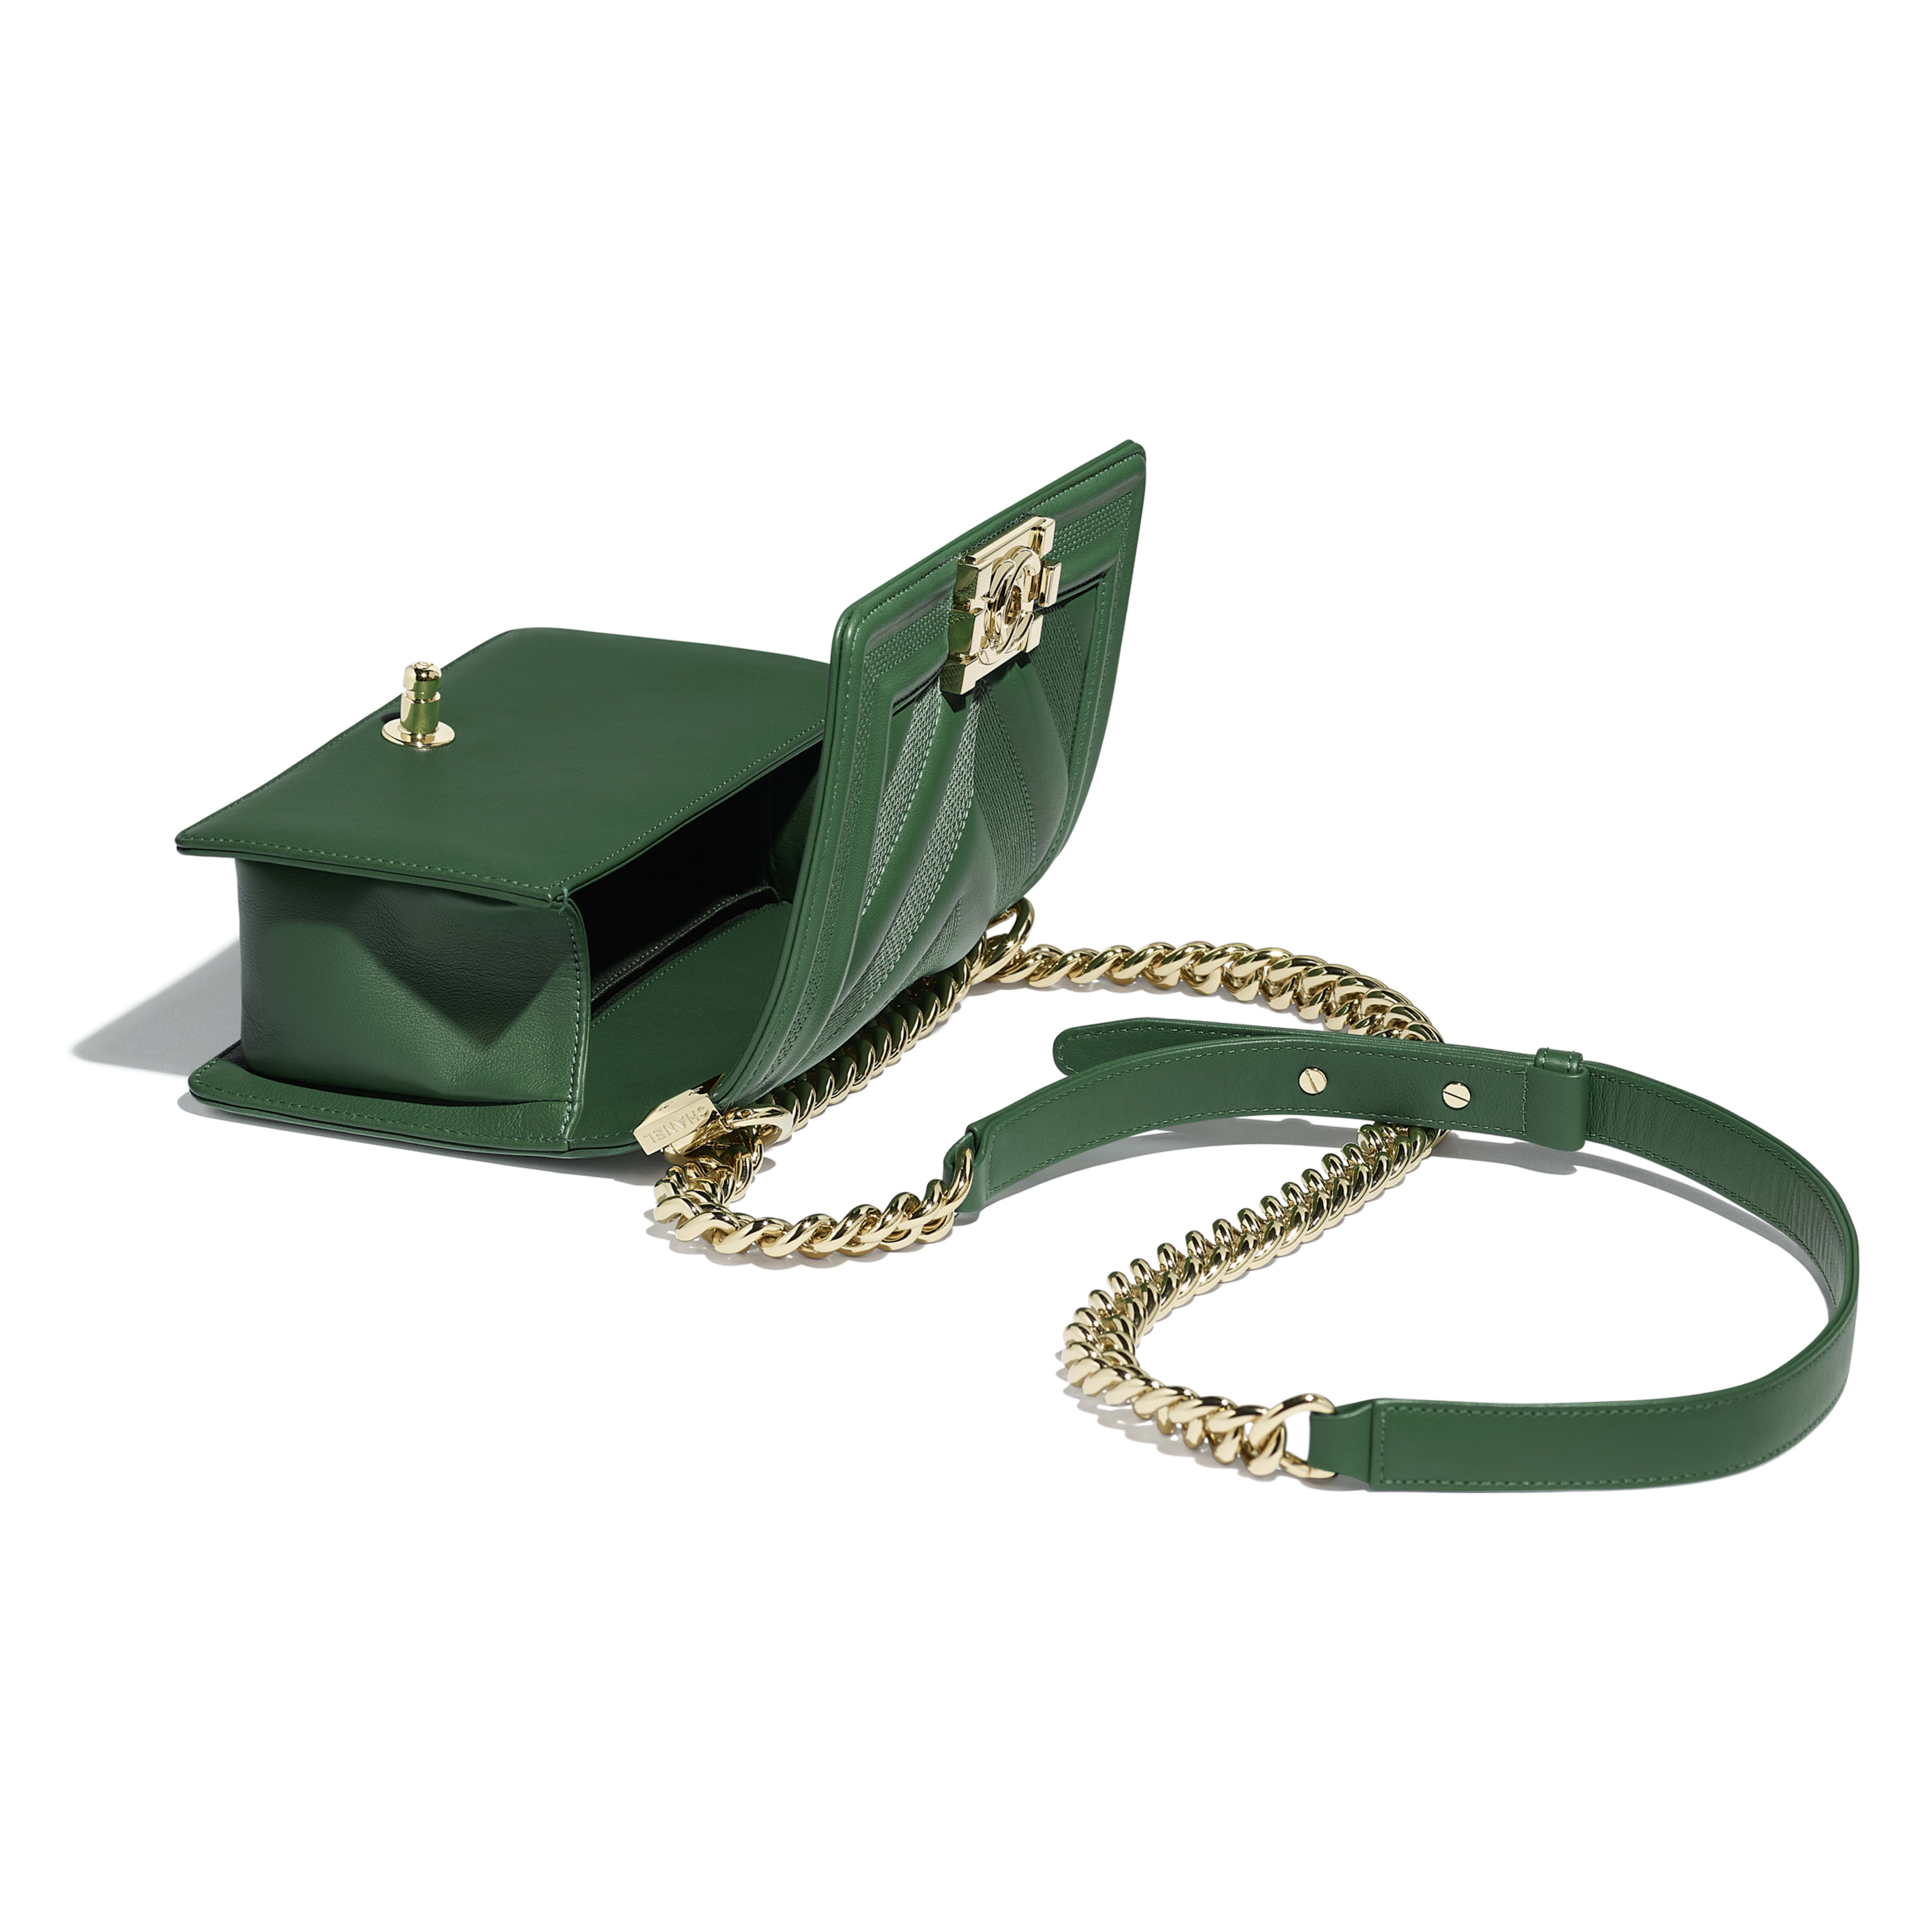 Small BOY CHANEL Handbag - Green - Calfskin & Gold-Tone Metal - Other view - see full sized version